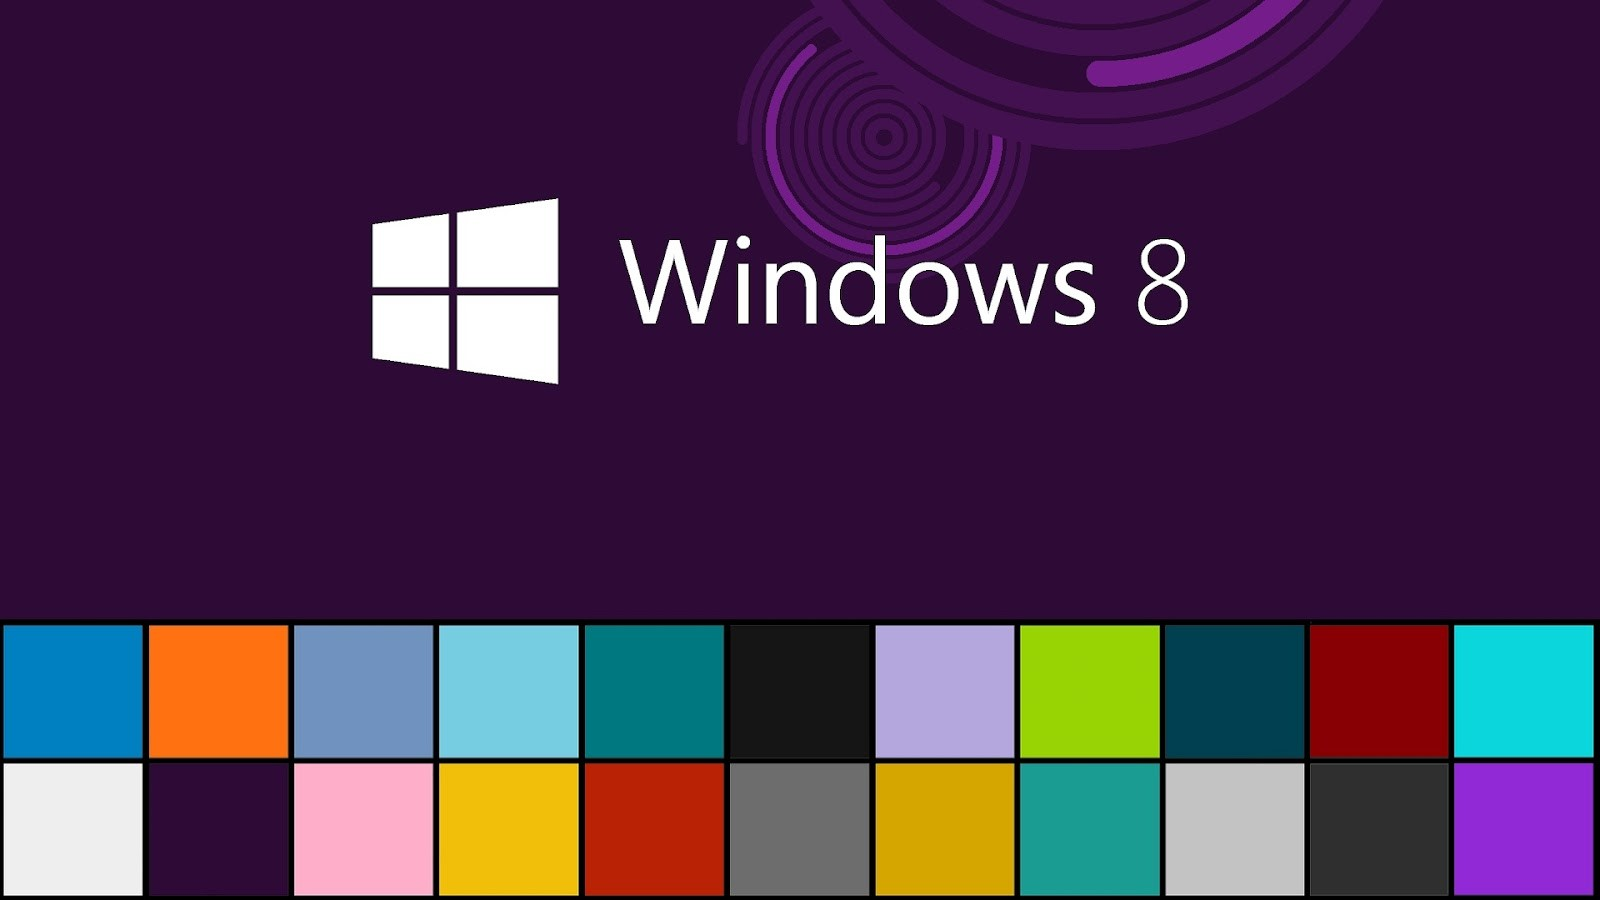 Windows  Wallpapers Widescreen  Cougfan 1600x900